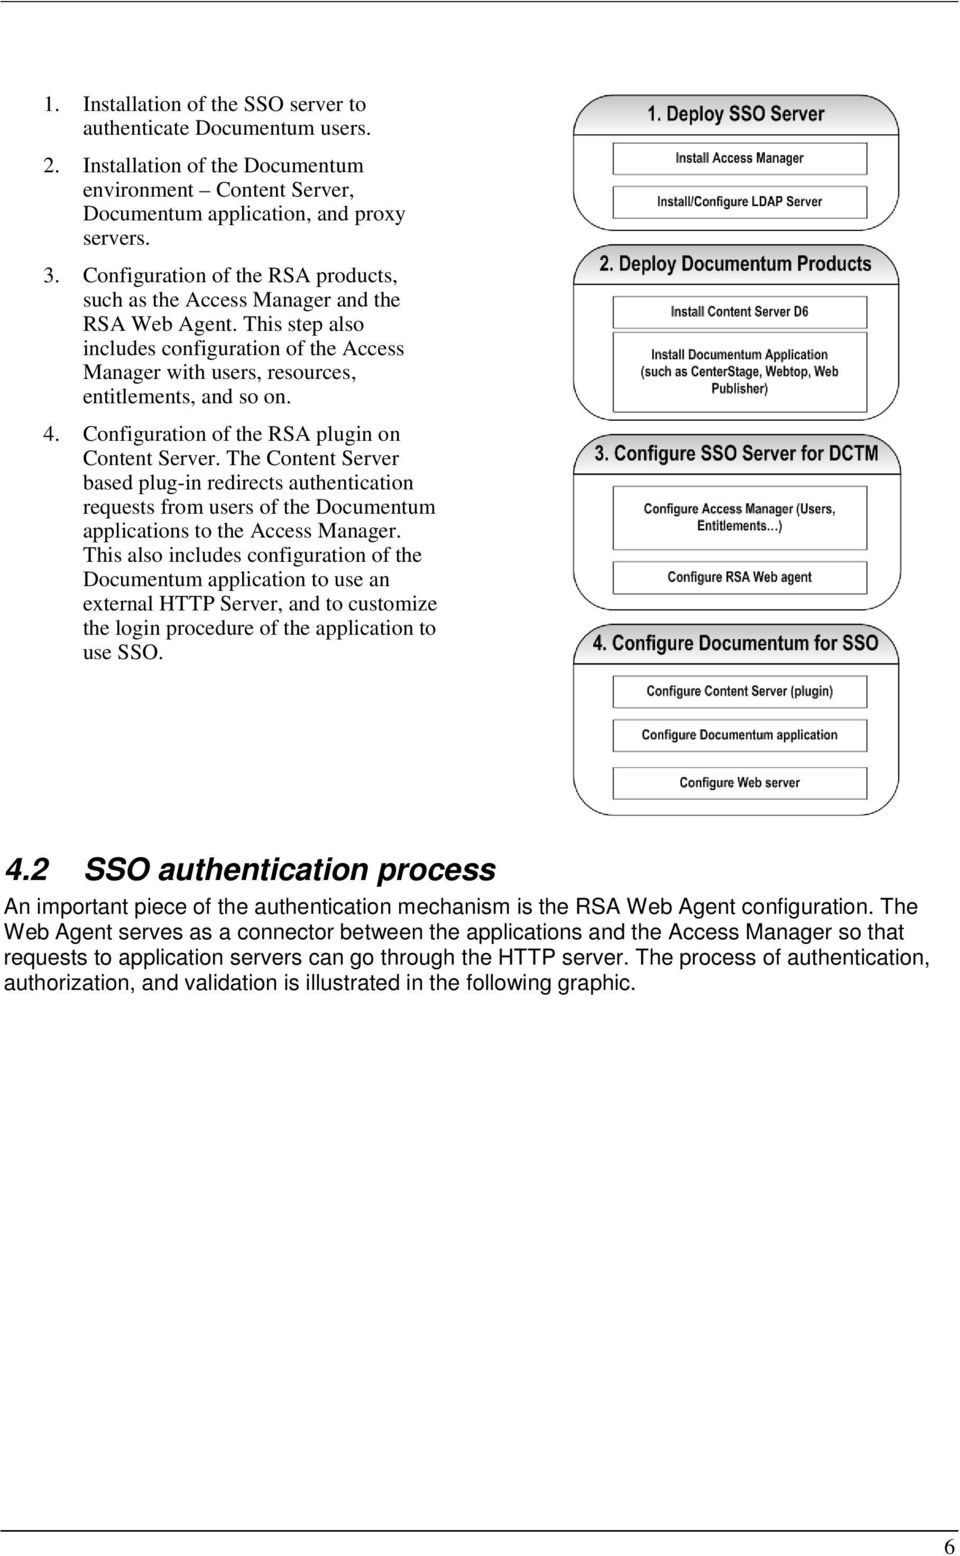 Configuration of the RSA plugin on Content Server. The Content Server based plug-in redirects authentication requests from users of the Documentum applications to the Access Manager.